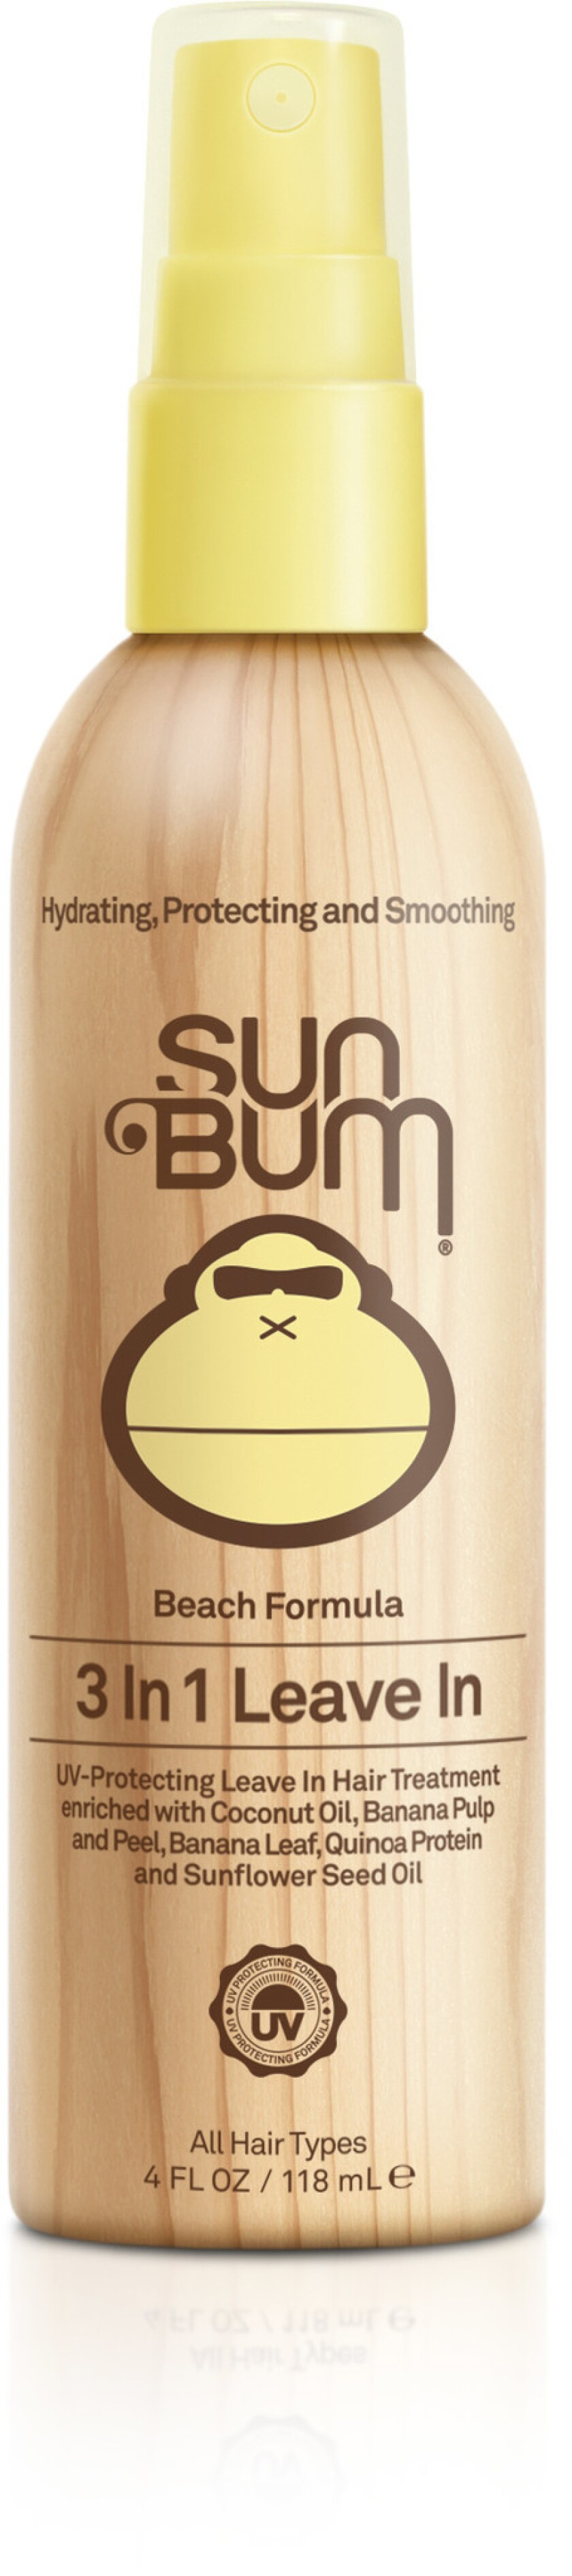 Sun Bum Leave-In Spray. (Courtesy photo)